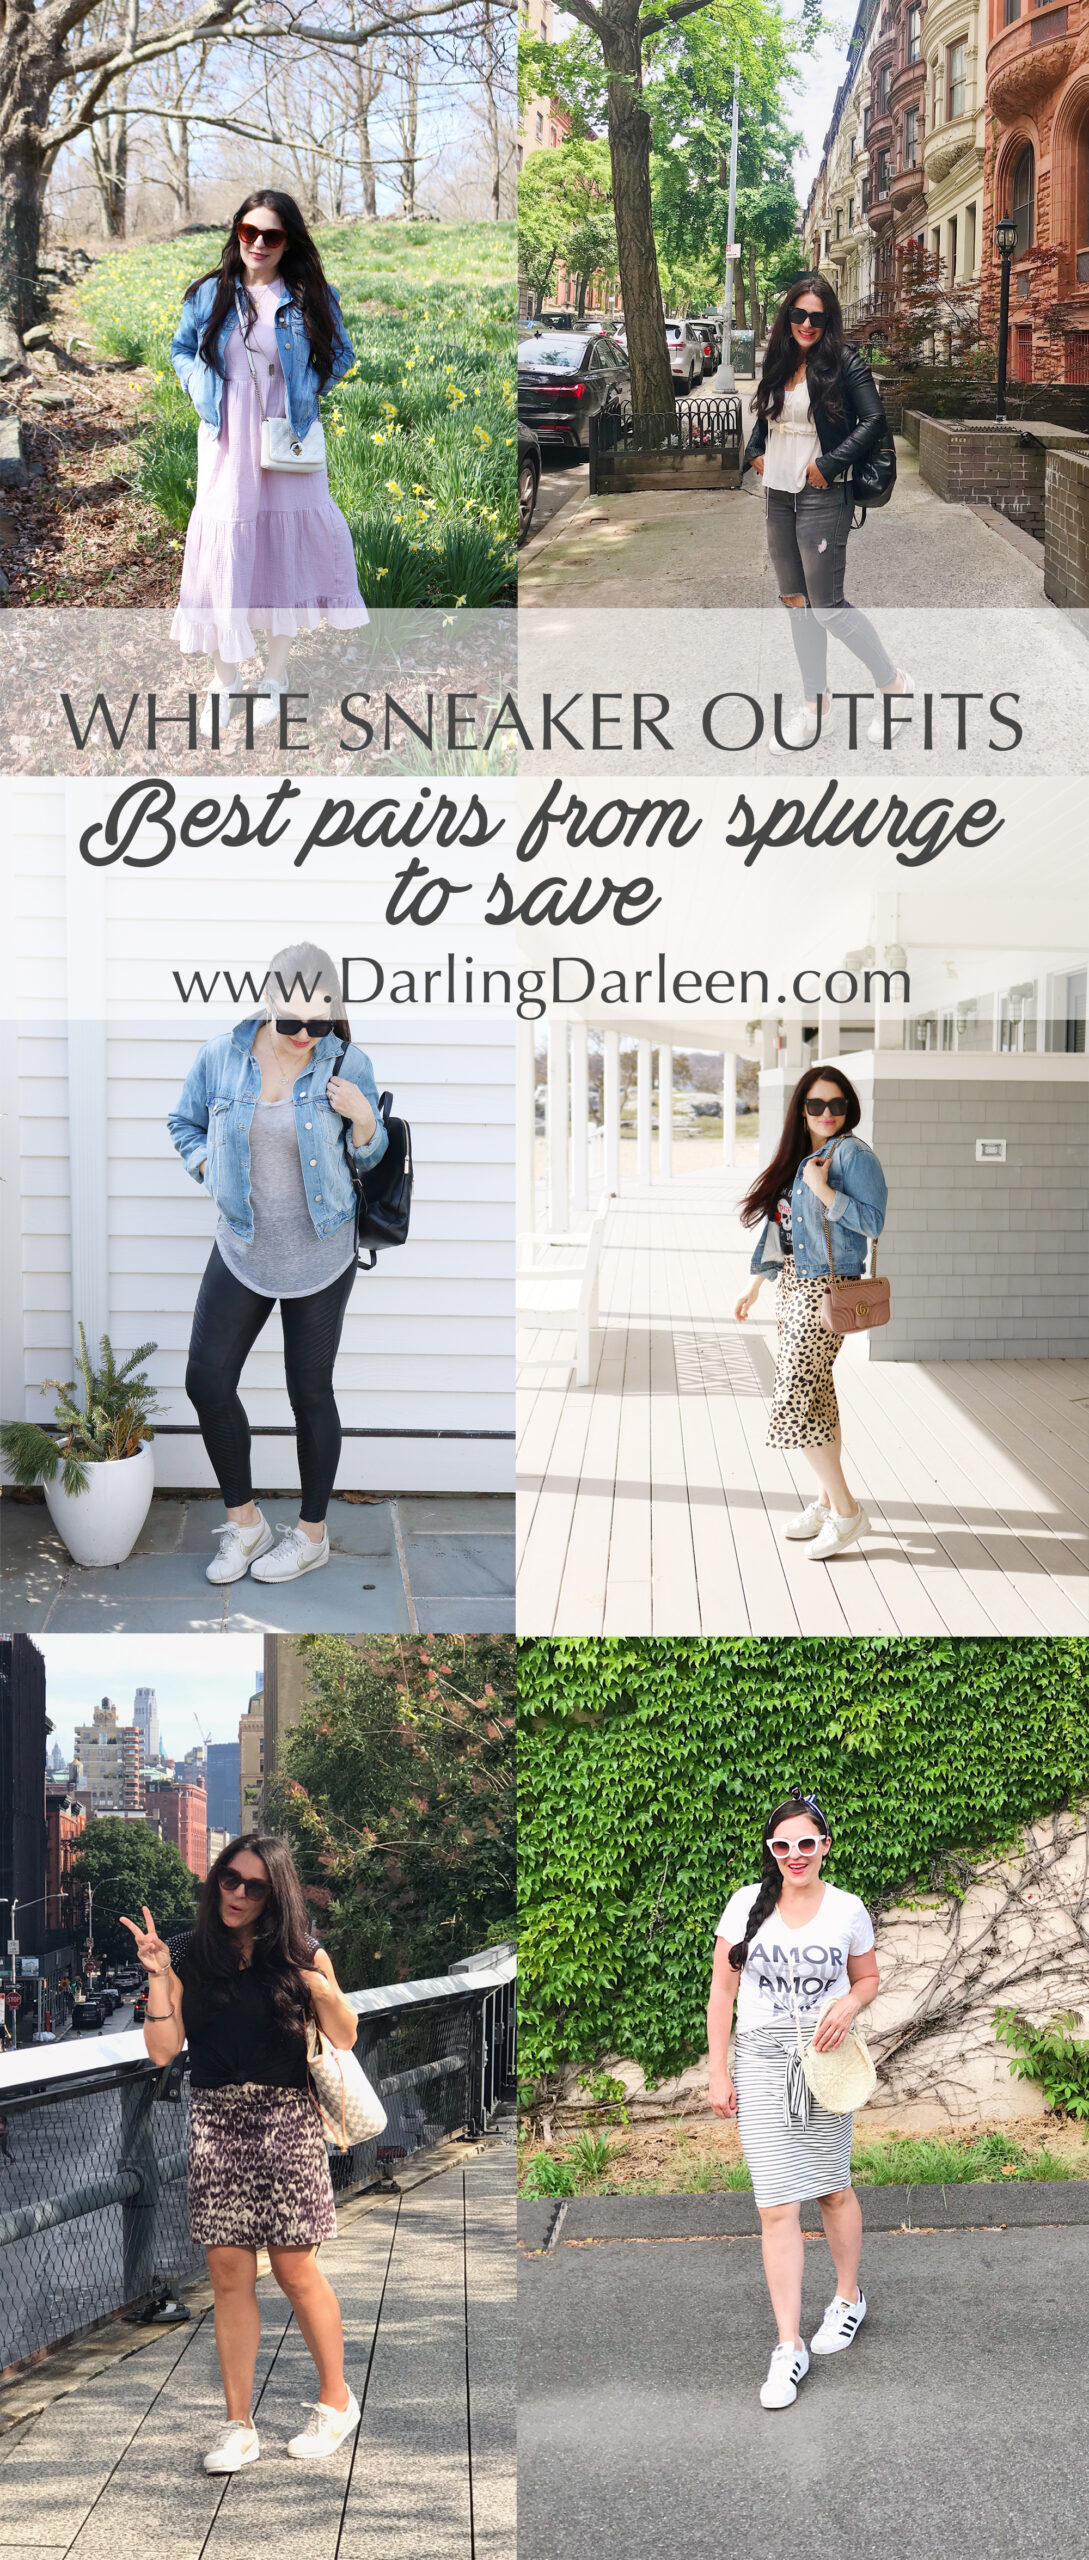 White sneaker outfits and the best sneaker pairs from splurge to save || Darling Darleen Top Connecticut Lifestyle Blogger #whitesneaker